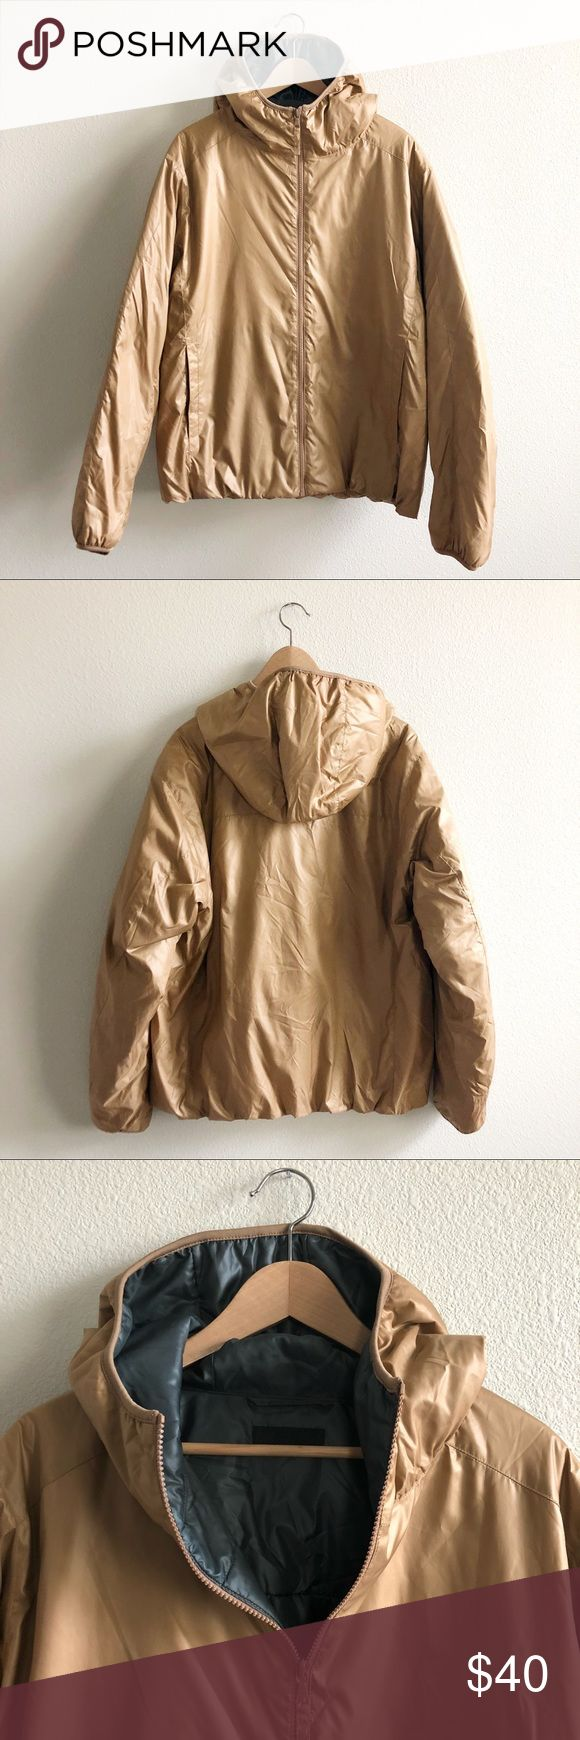 "UNIQLO - mens ultra light puffy jacket Light parka with color matched stitching & zipper. Dark champagne/tan shell & teal interior.   Chest 50""  Good used condition Uniqlo Jackets & Coats Puffers"